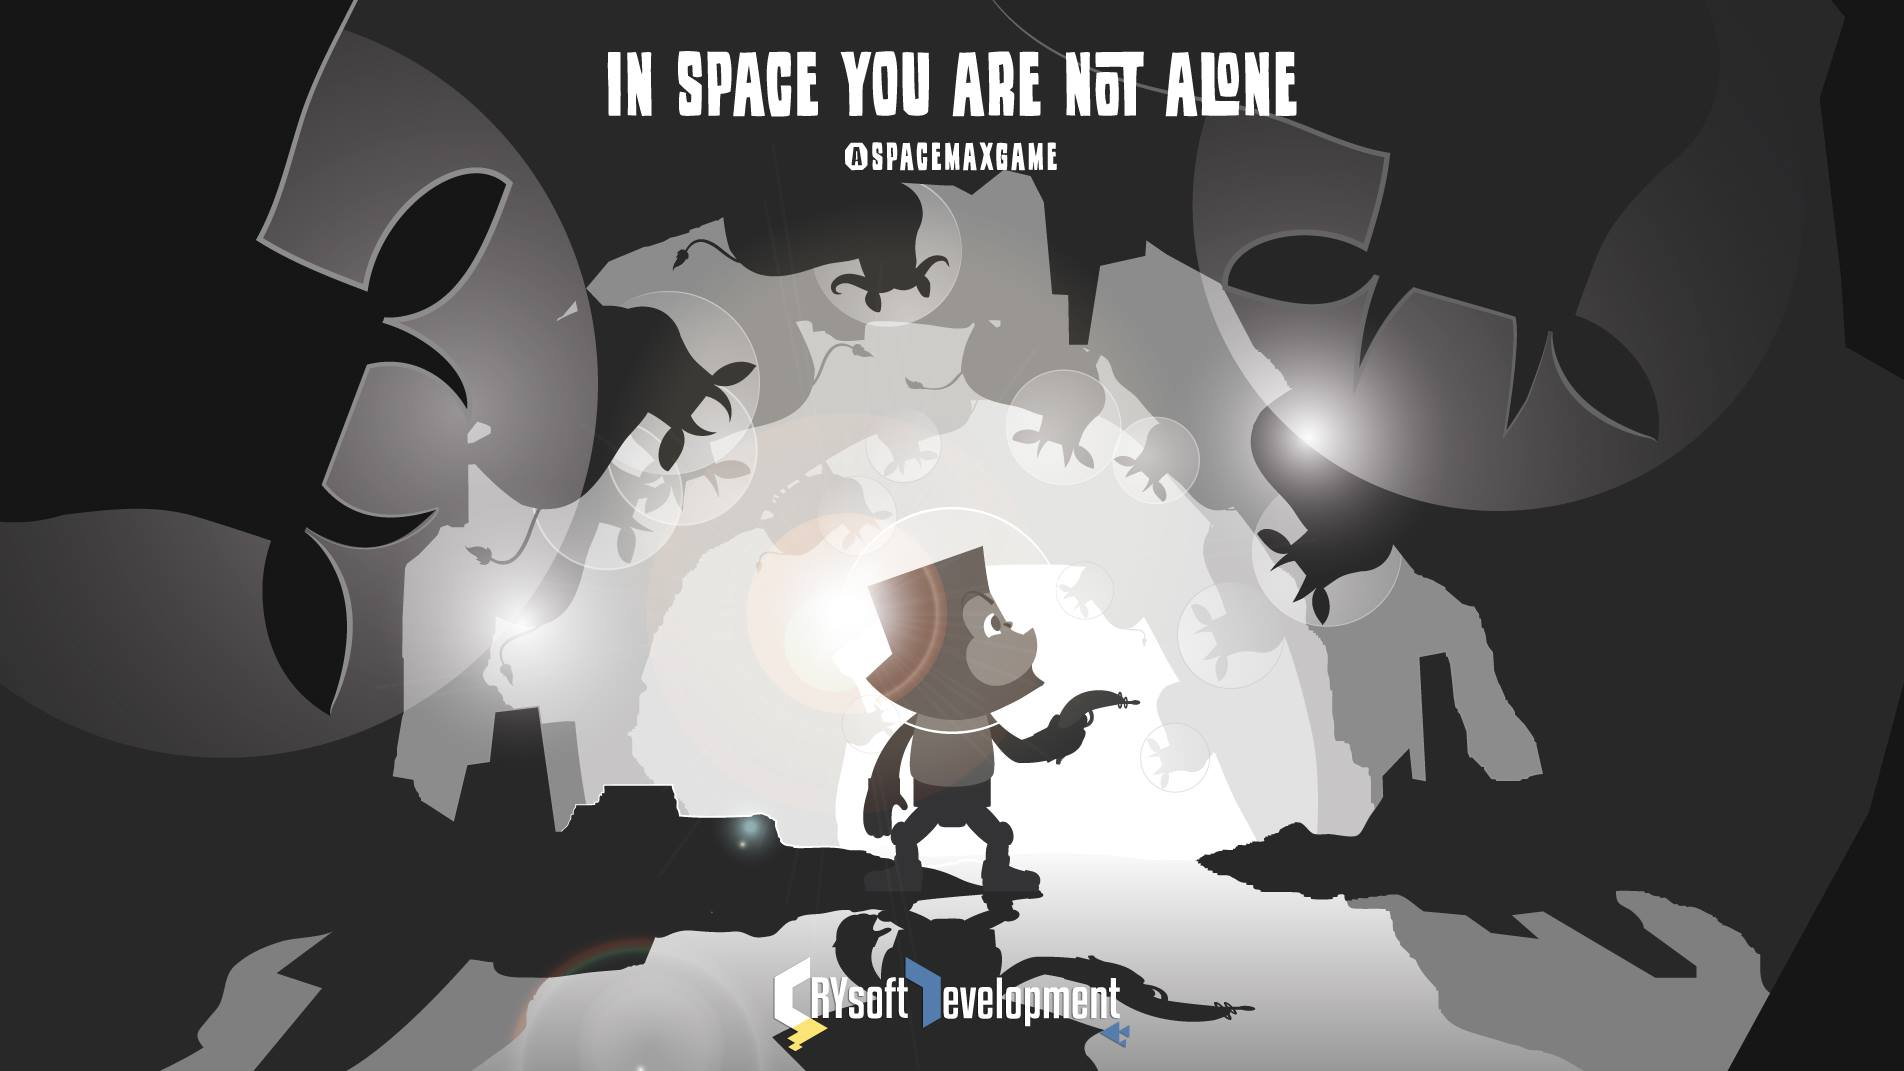 Space Max - In Space You Are Not Alone